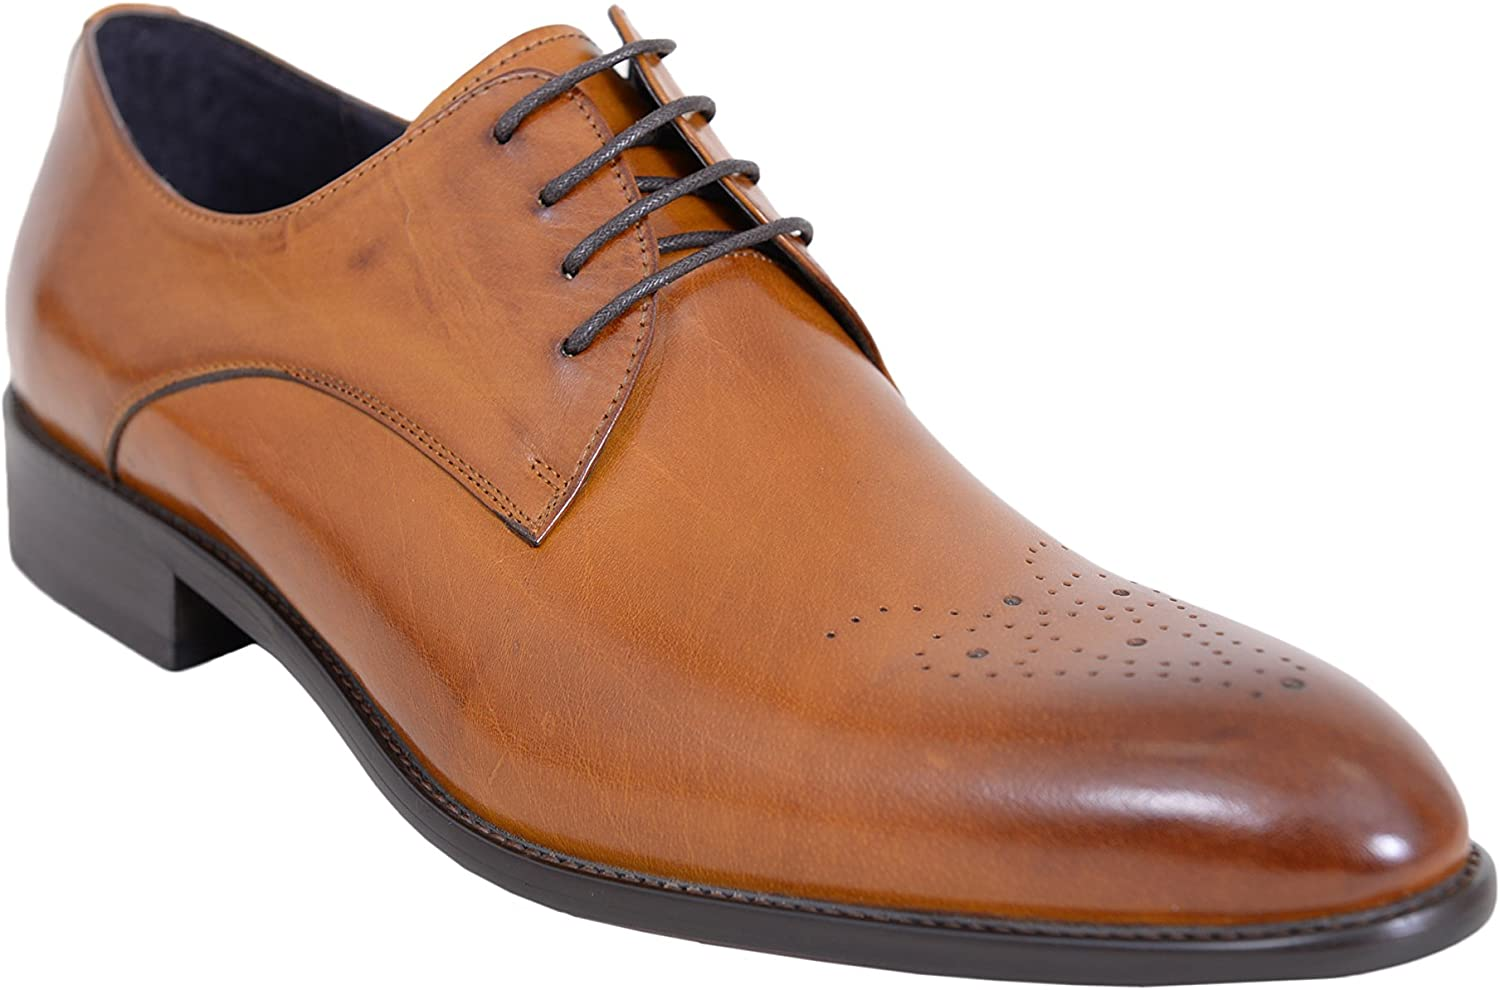 Carrucci Cognac Brown Oxford Leather Dress shoes with Broguing On Toe